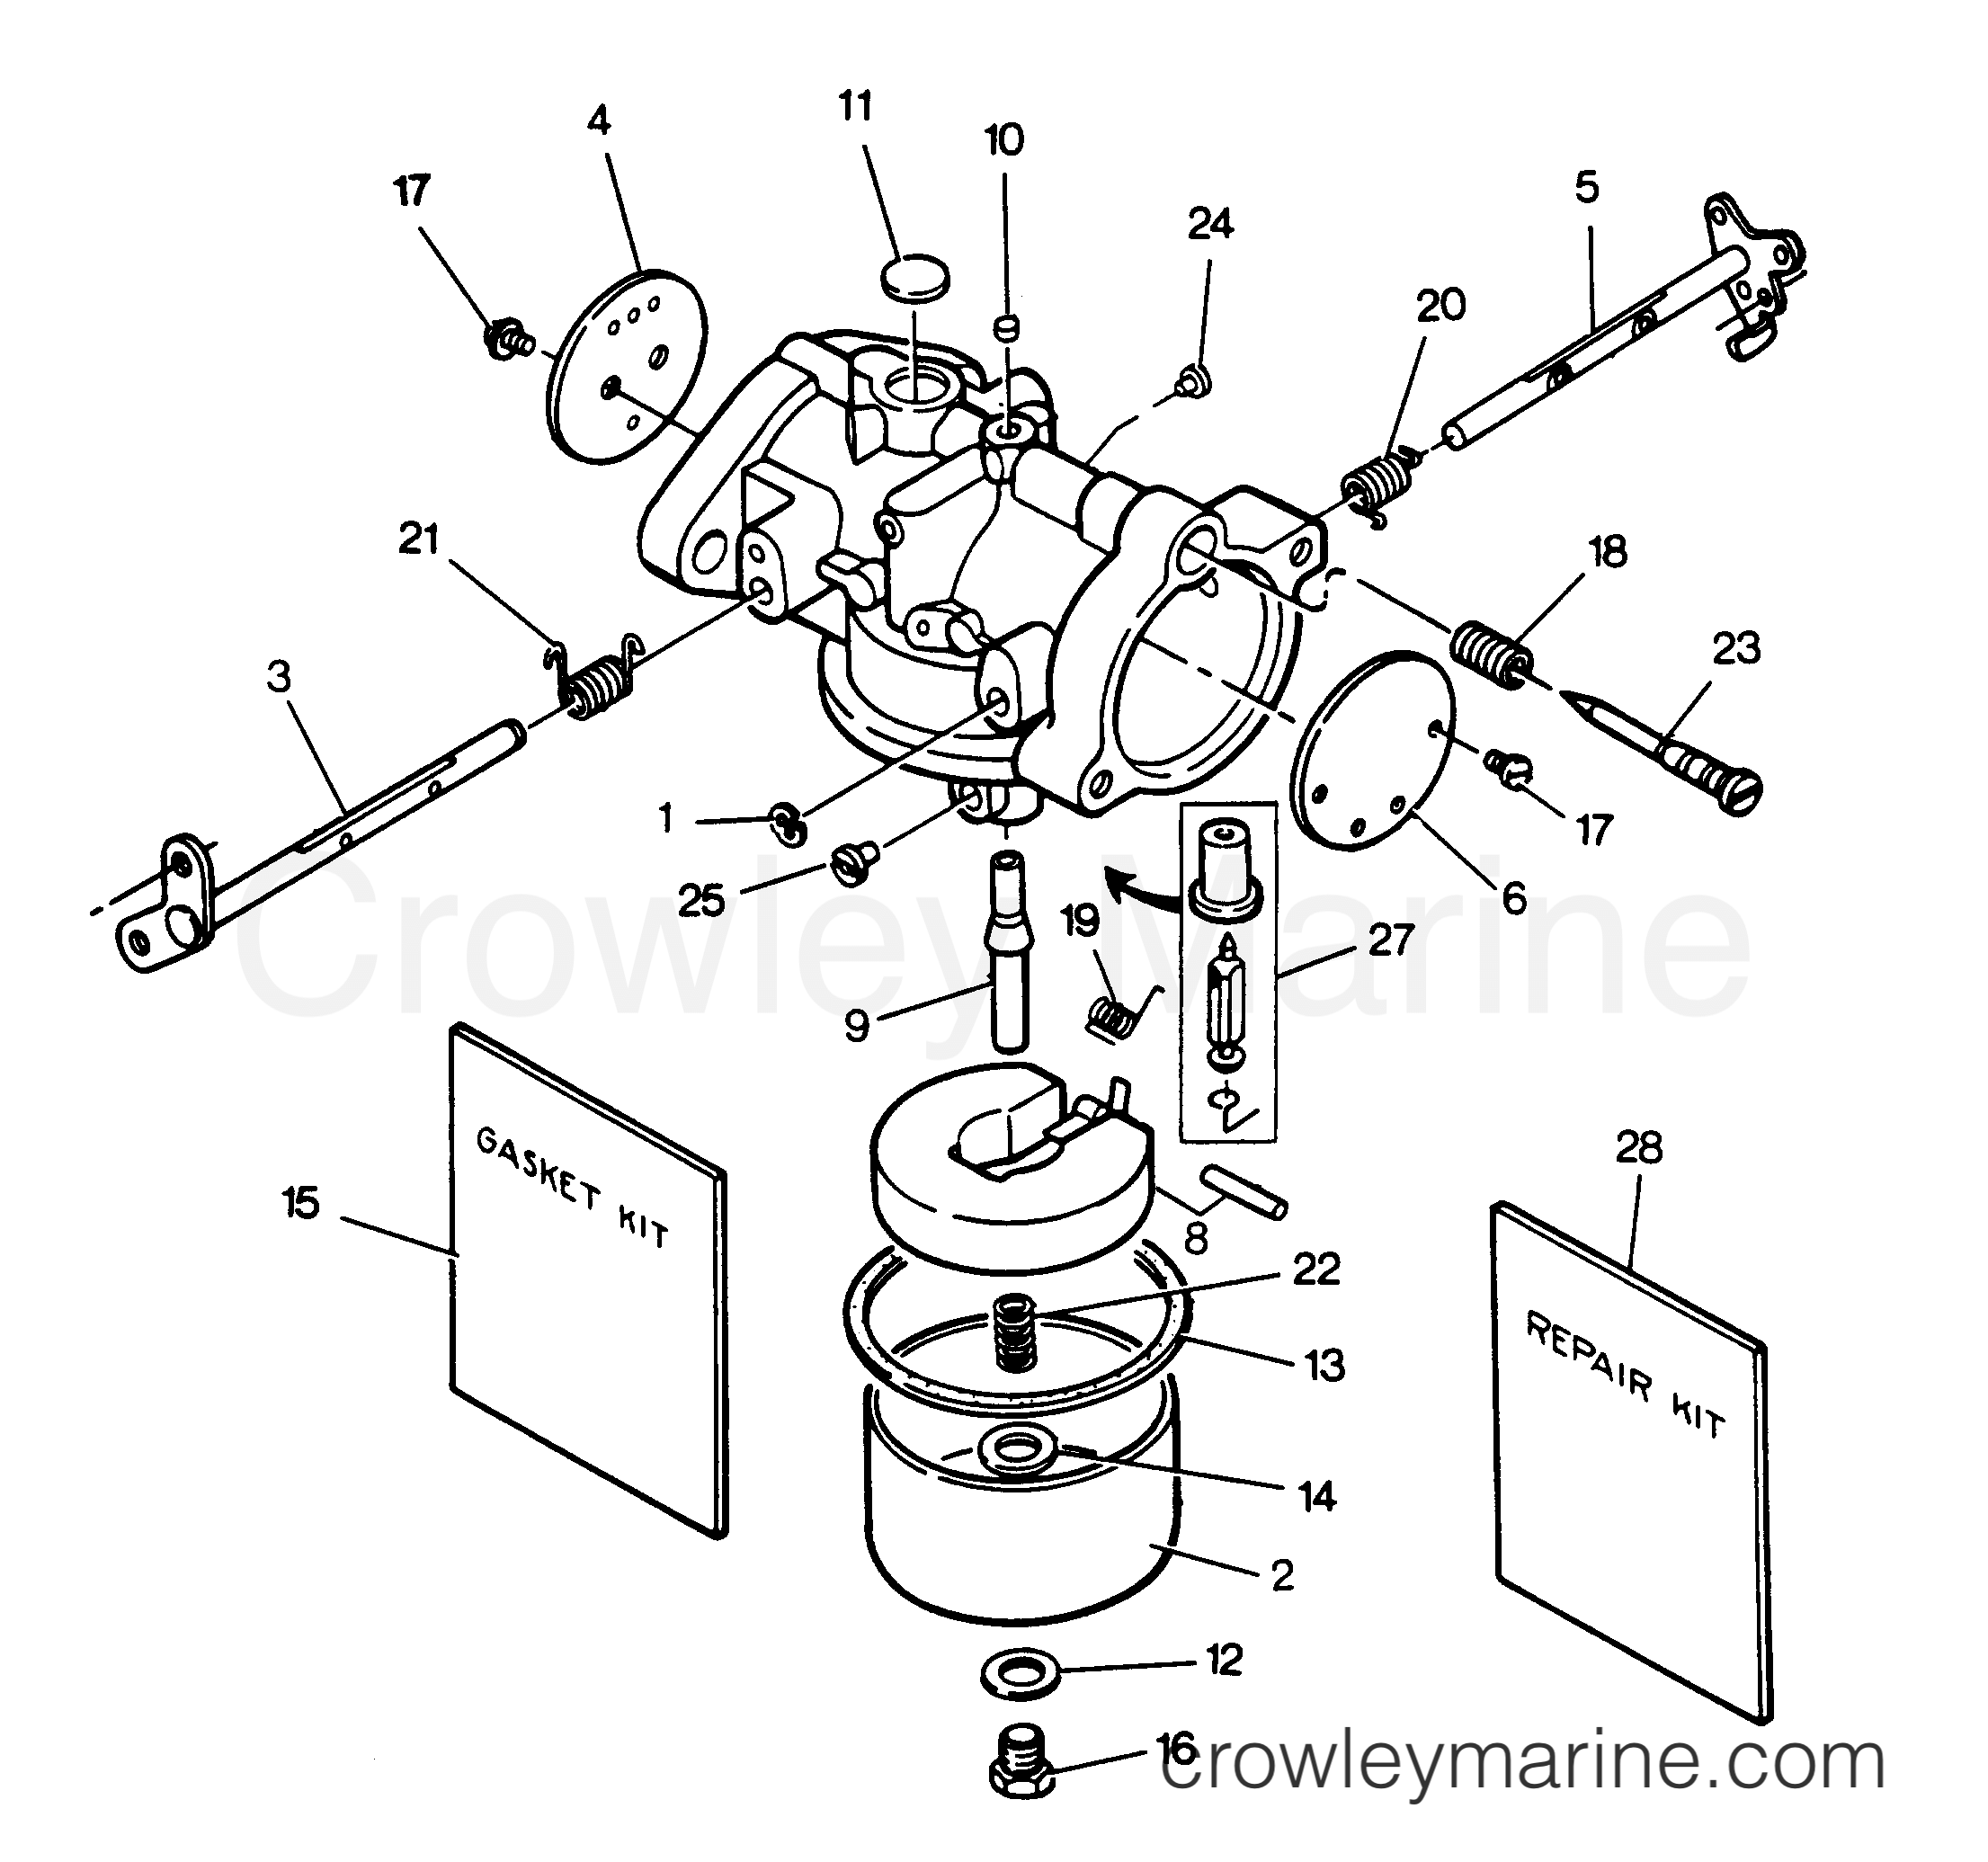 1988 Force Outboard 85 - H0851X88A - CARBURETOR section